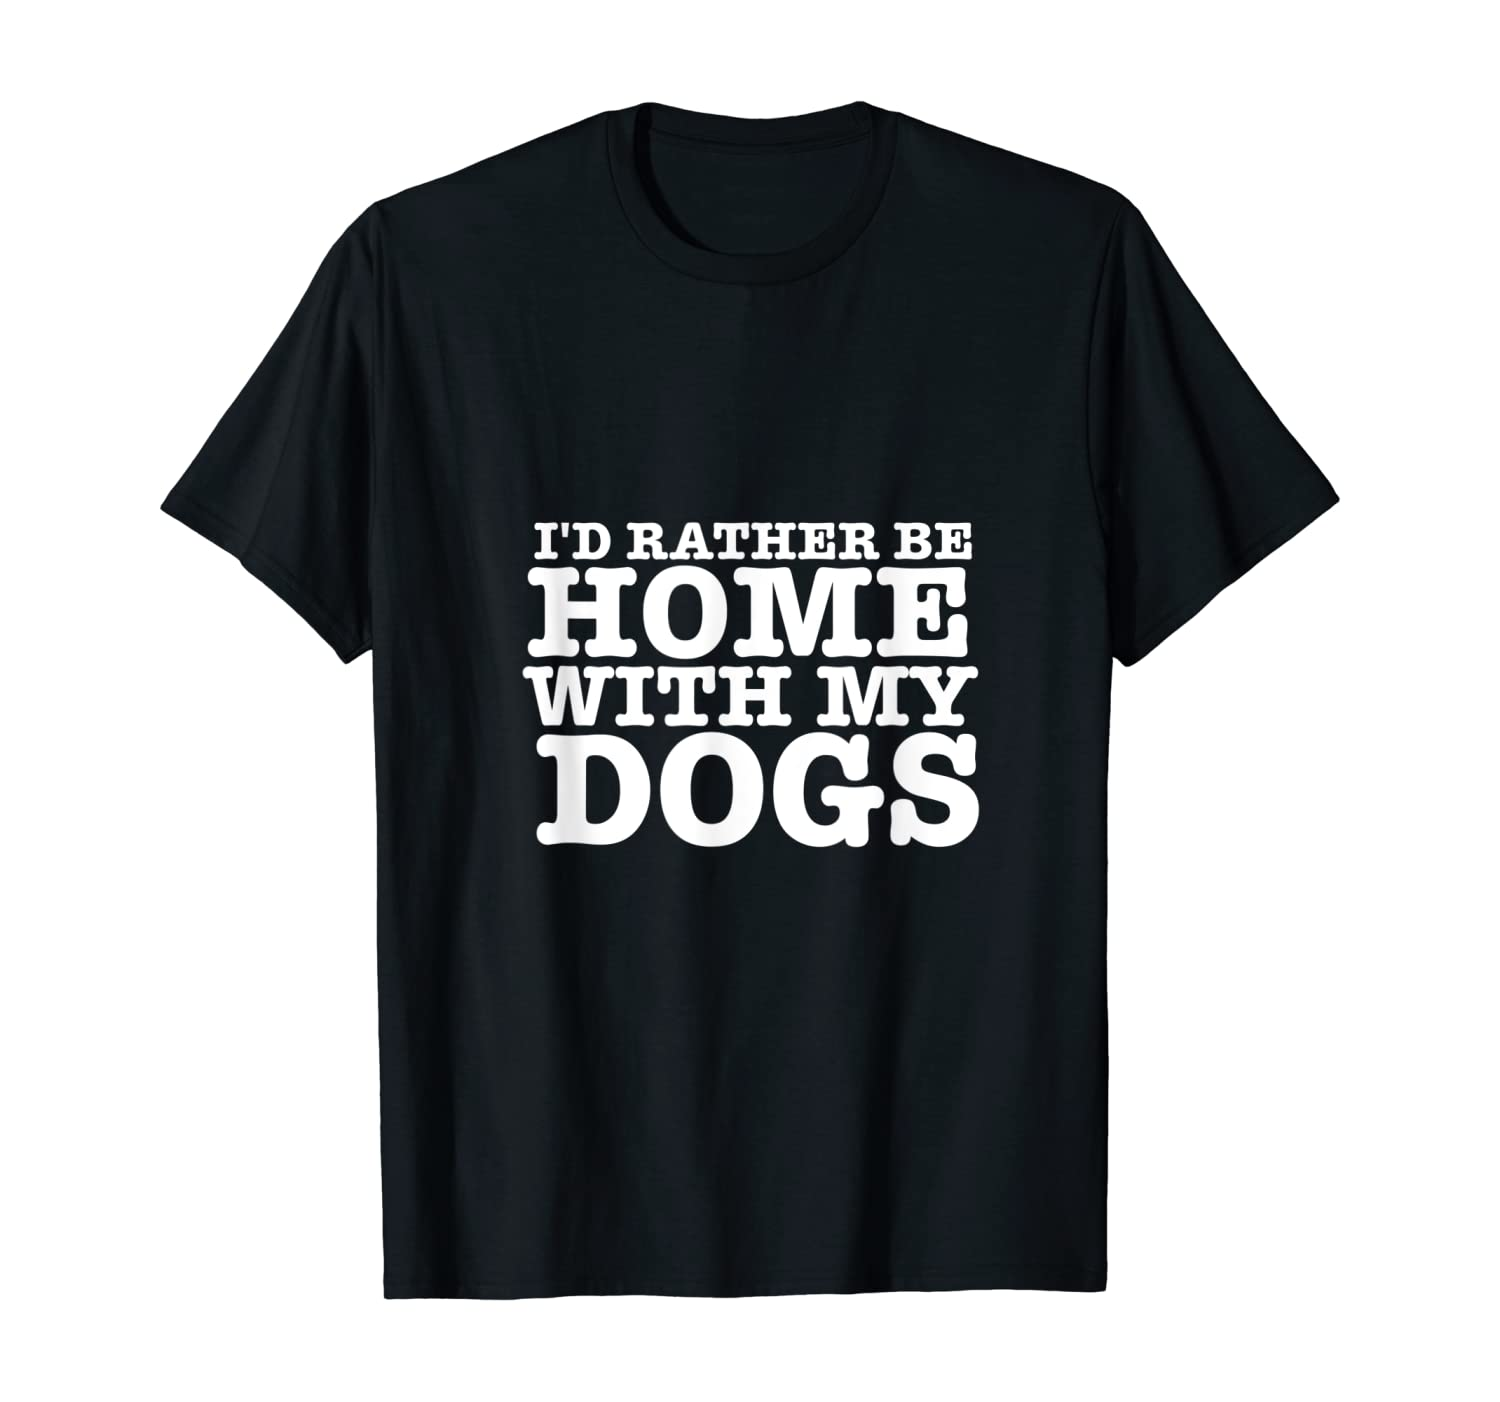 I'd Rather be Home with My Dogs Funny T Shirt for Dog Lovers